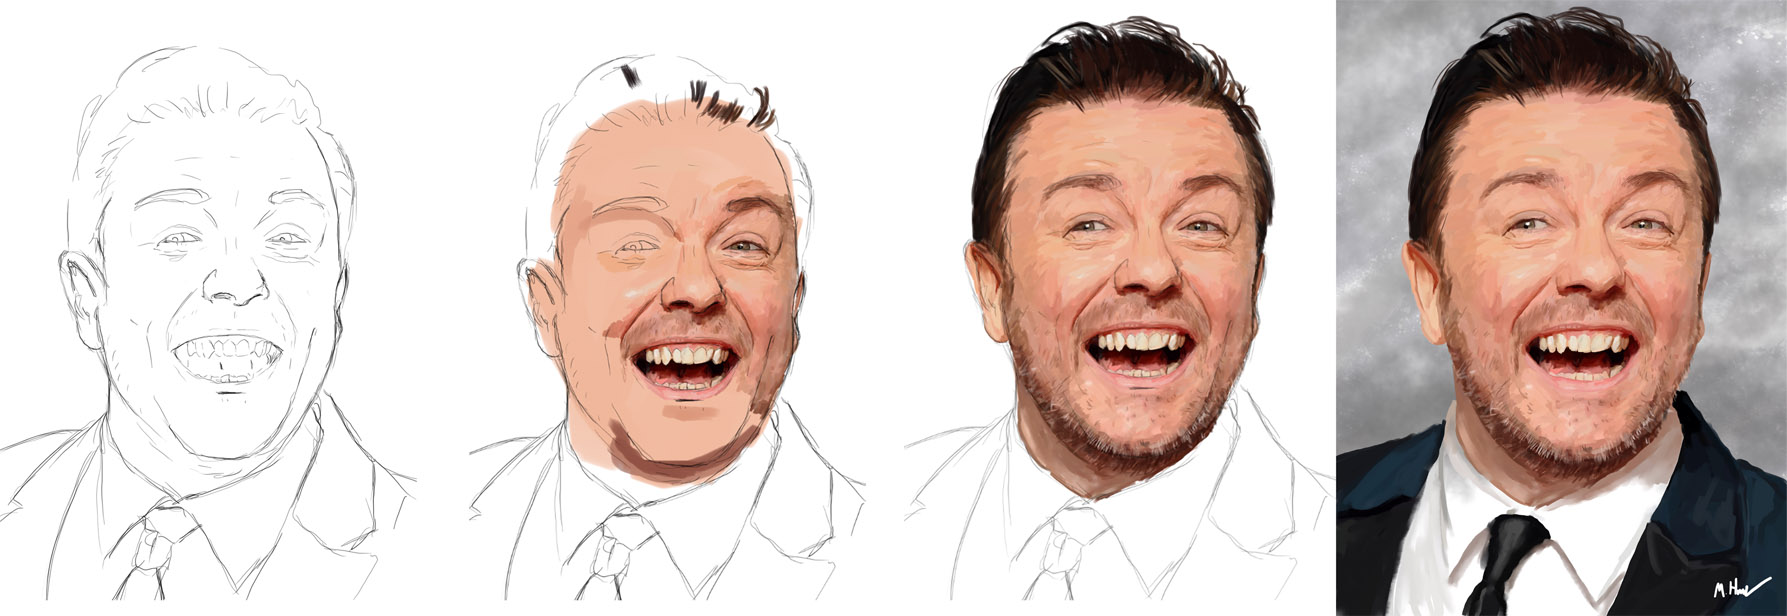 Ricky Gervais Progress